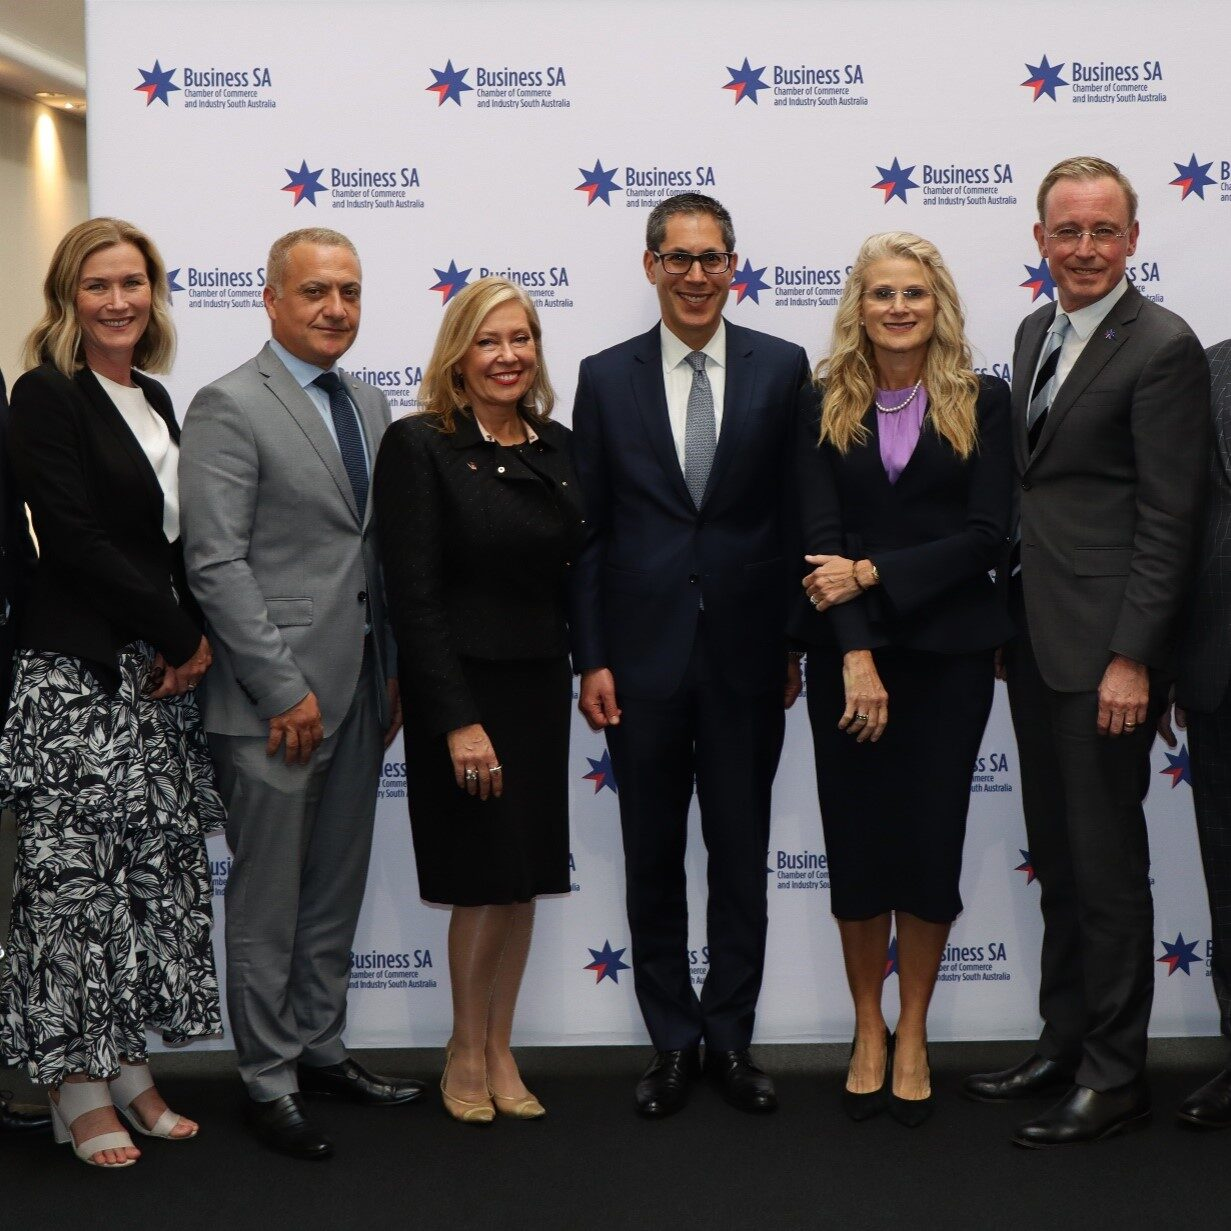 Business SA and the American Chamber of Commerce